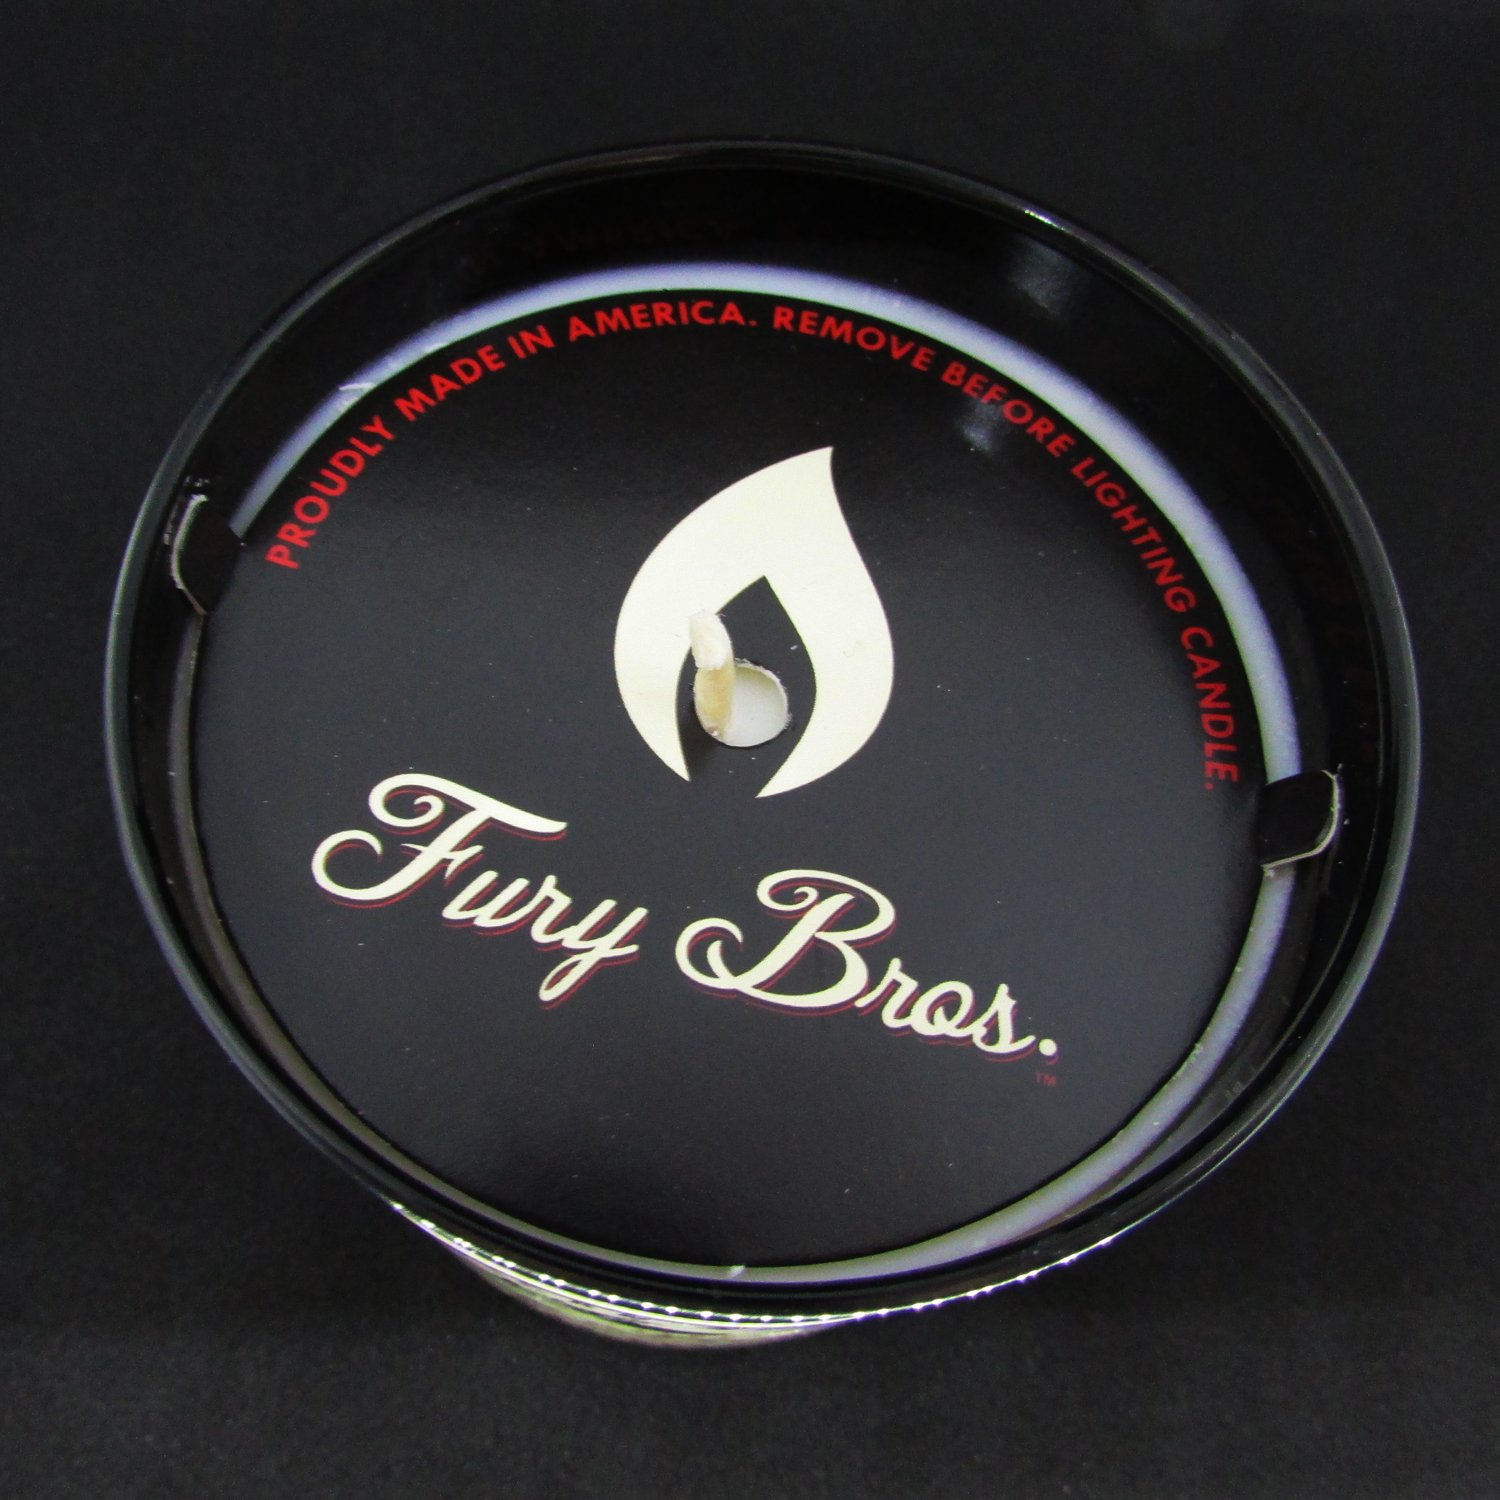 Fury Bros. Luxury Black Series Candles for Men | Made in the USA with High Grade 100 percent Soy Wax for a Long, Smooth Burn | All Natural, Vegan| Black Tea - Dutch East India Company Cargo, 9 ounce by Fury Bros. (Image #3)